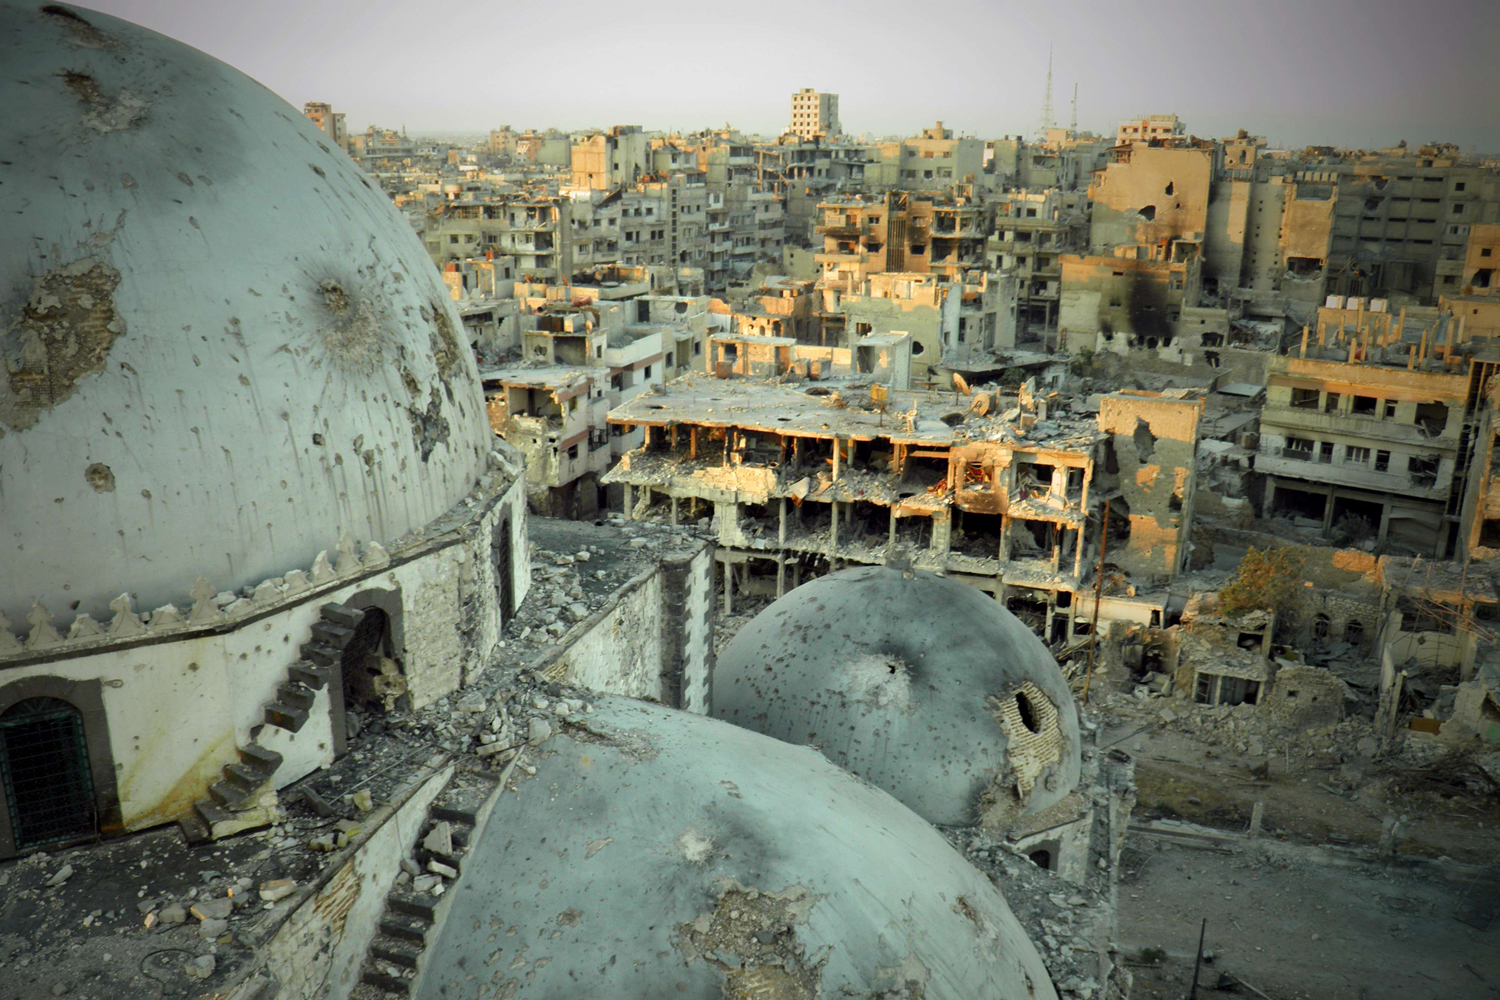 July 25, 2013. A handout image released by the Syrian opposition's Shaam News Network allegedly shows the Khaled bin Walid mosque whose mausoleum has been partially destroyed in the al-Khalidiyah neighborhood of the central Syrian city of Homs.